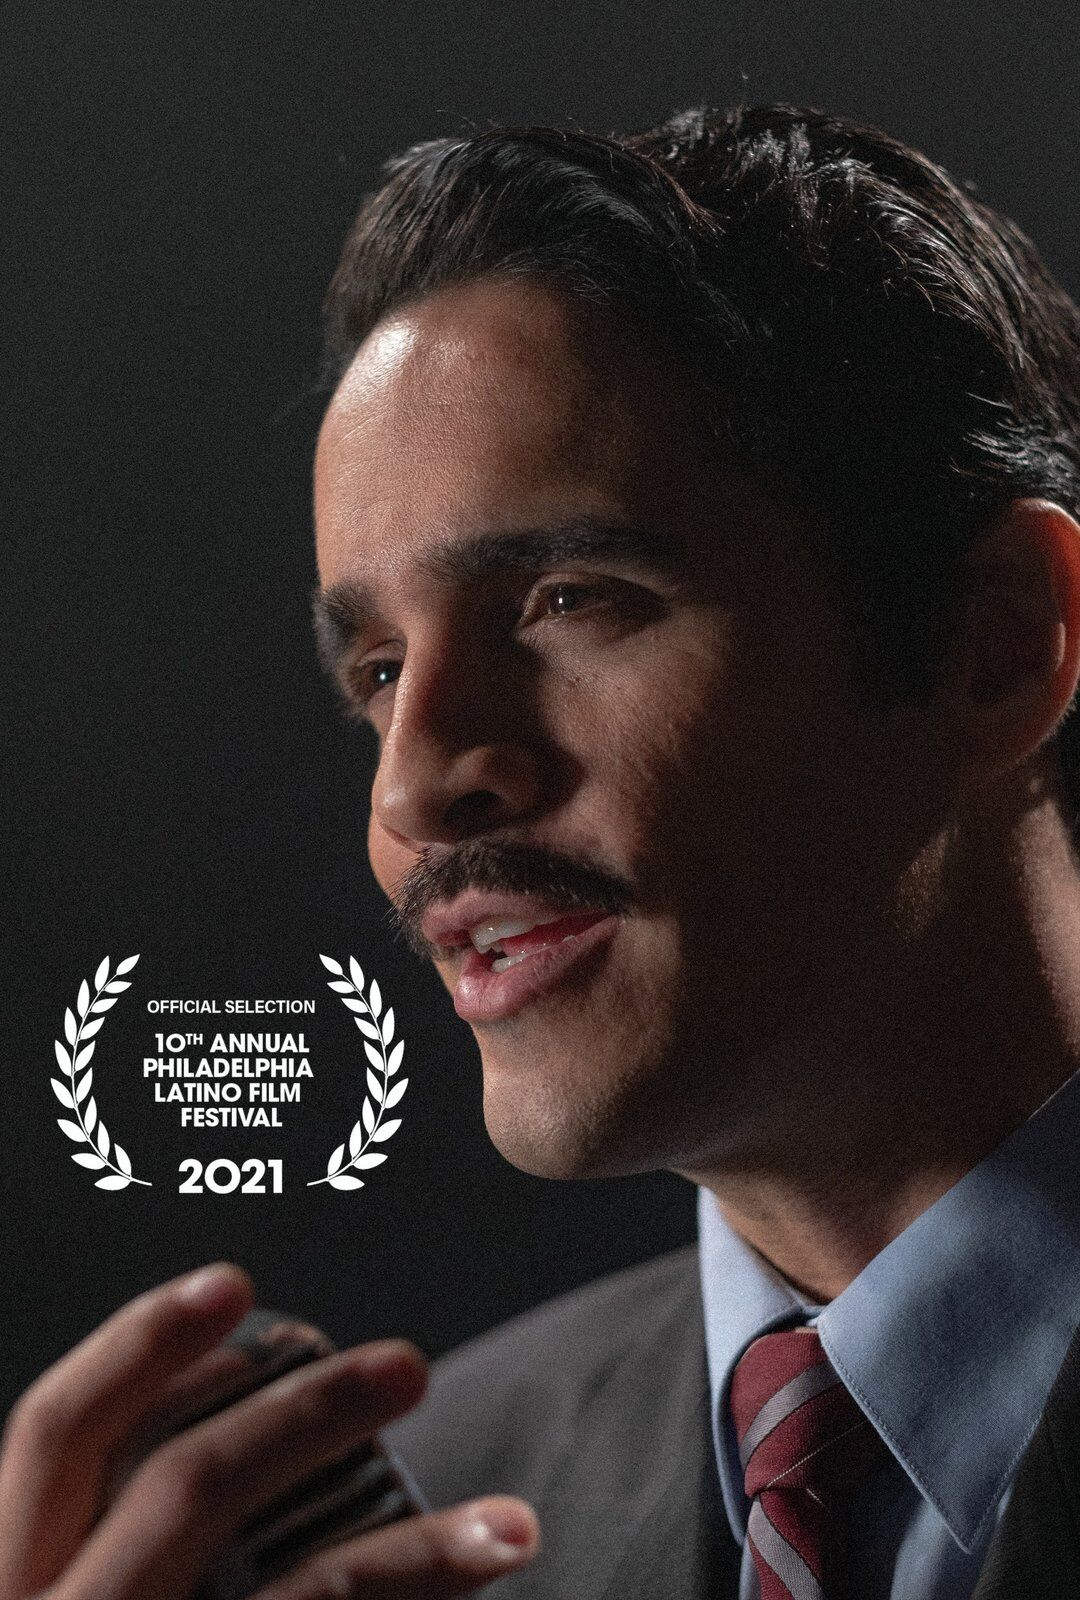 The Last Tour (Latino Film Festival selection)